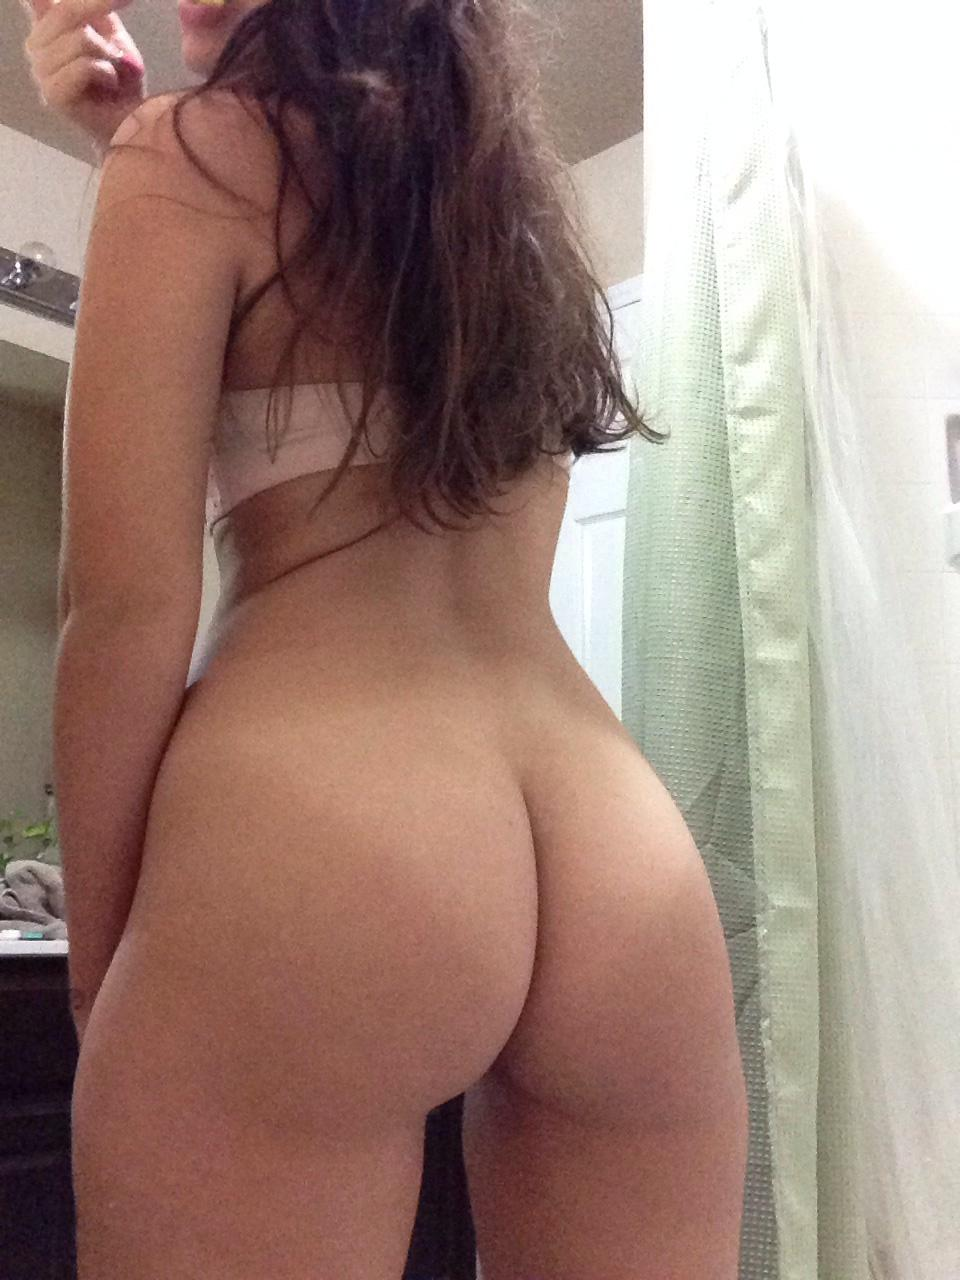 Nicest nude girl ass